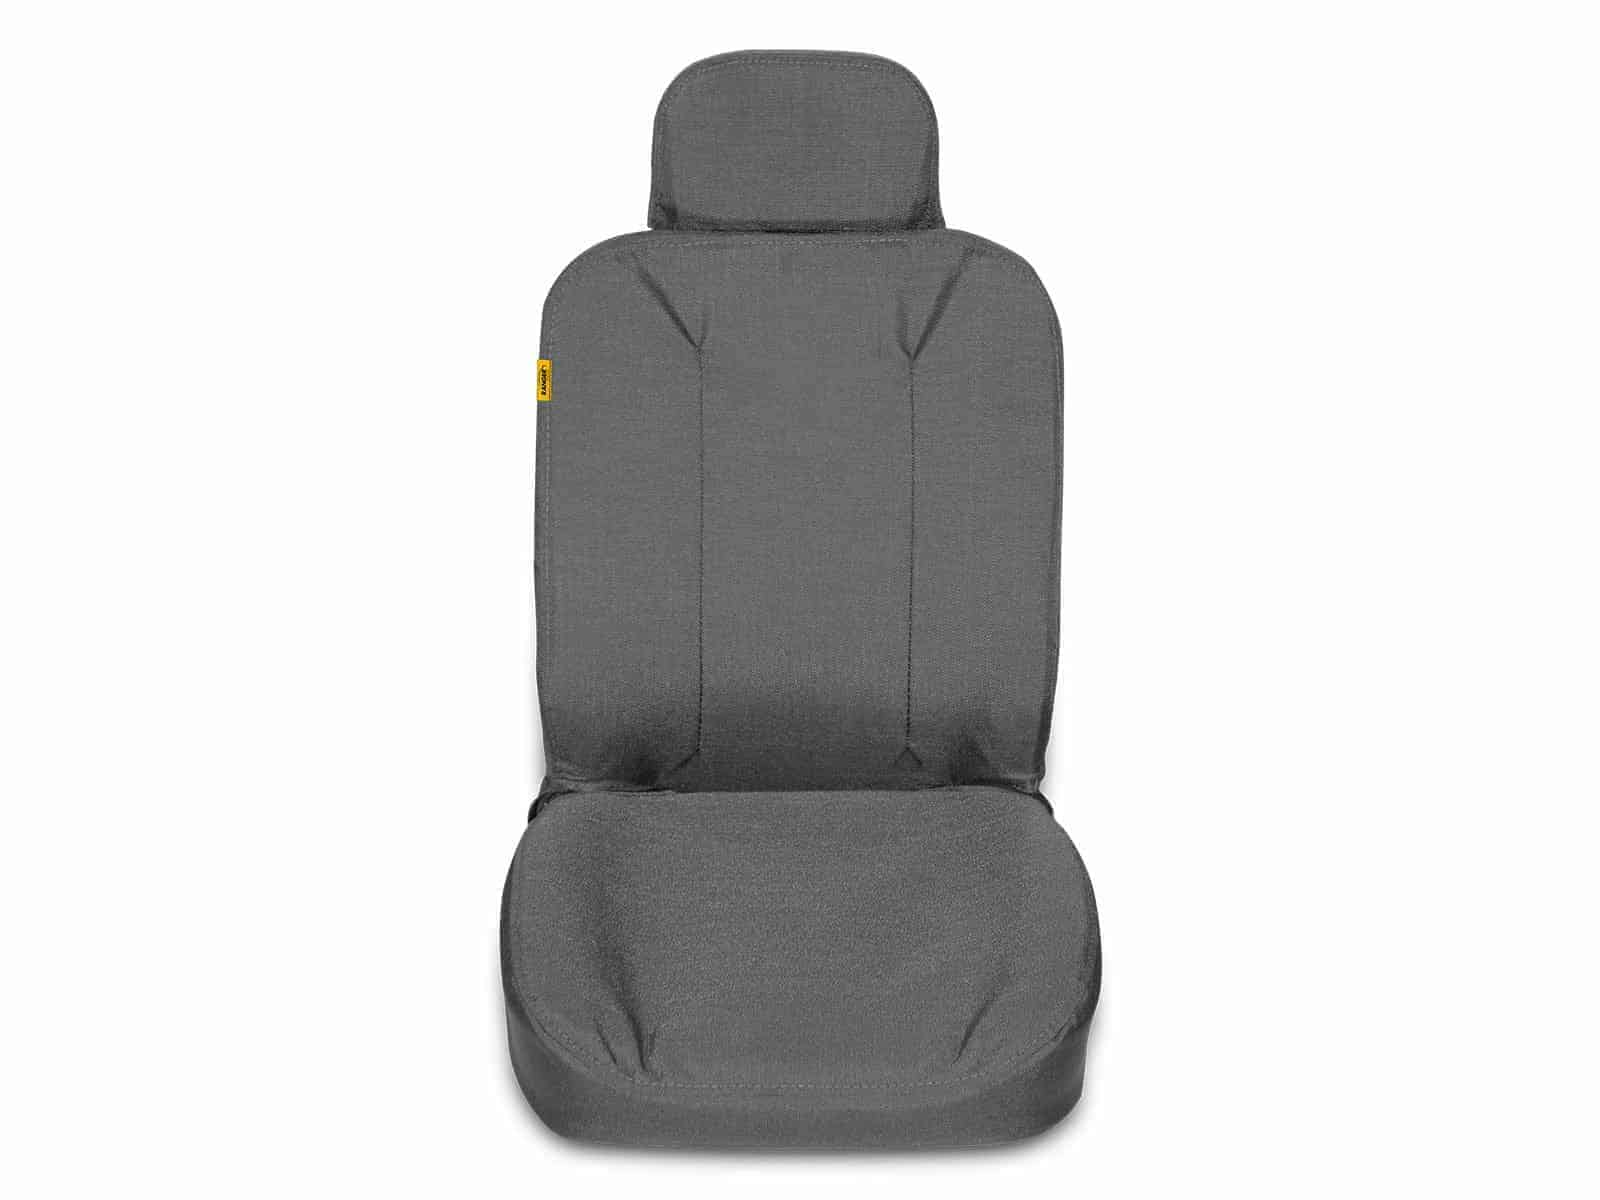 Where Can I Find Seat Covers Set Of Ford Transit Van Seat Covers